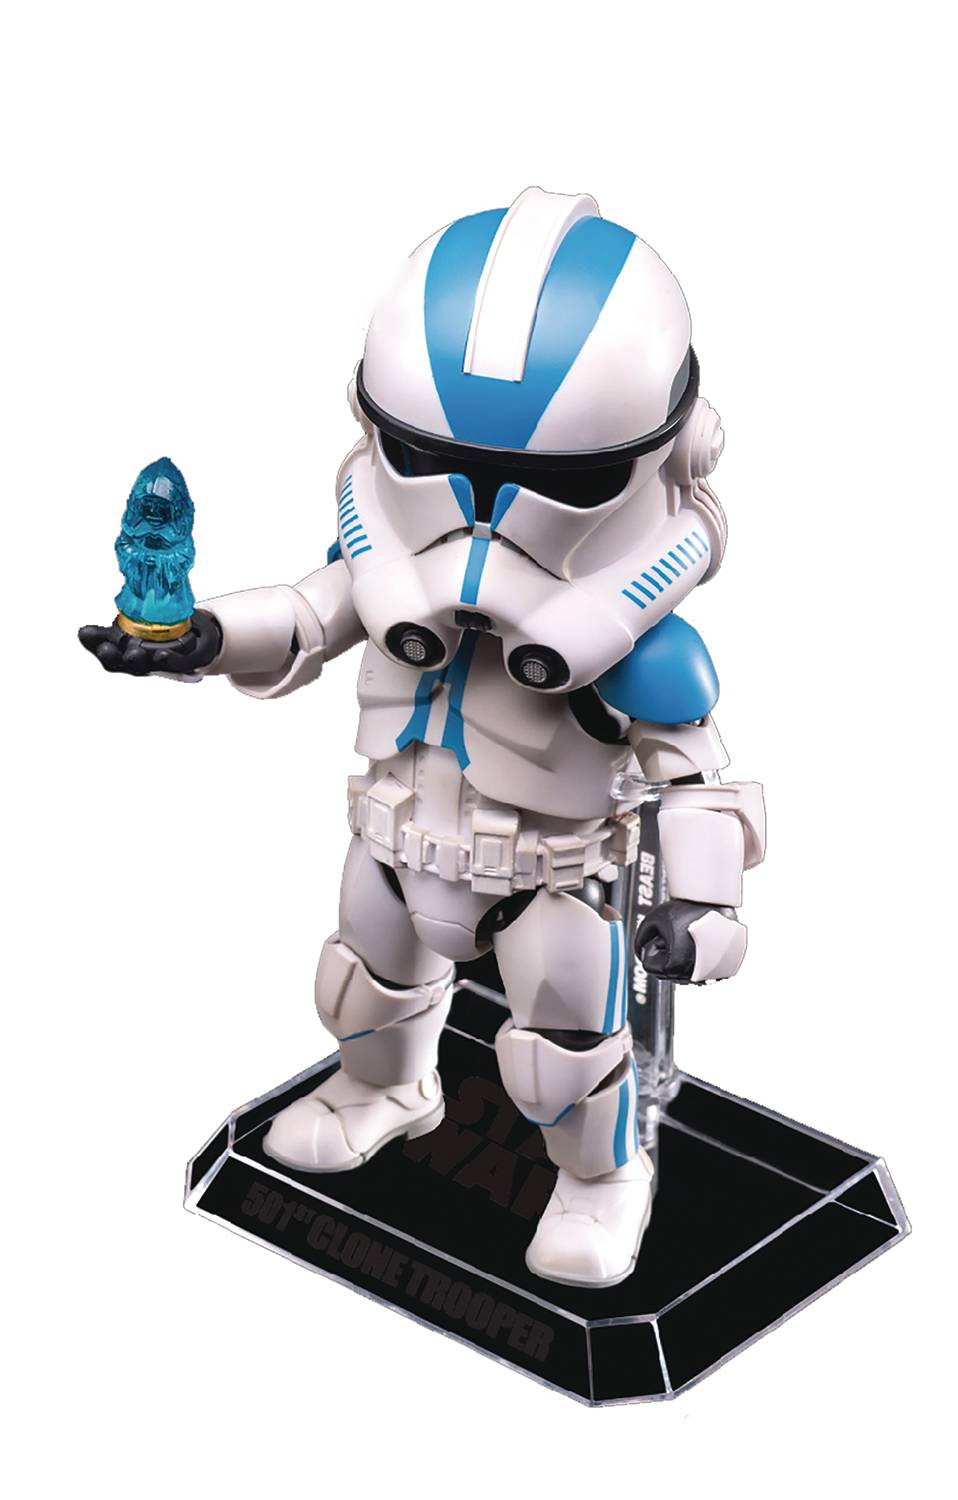 Diamond, Beast Kingdom Enlist Fans Into The Republic Army With New PX Star Wars Trooper Figures